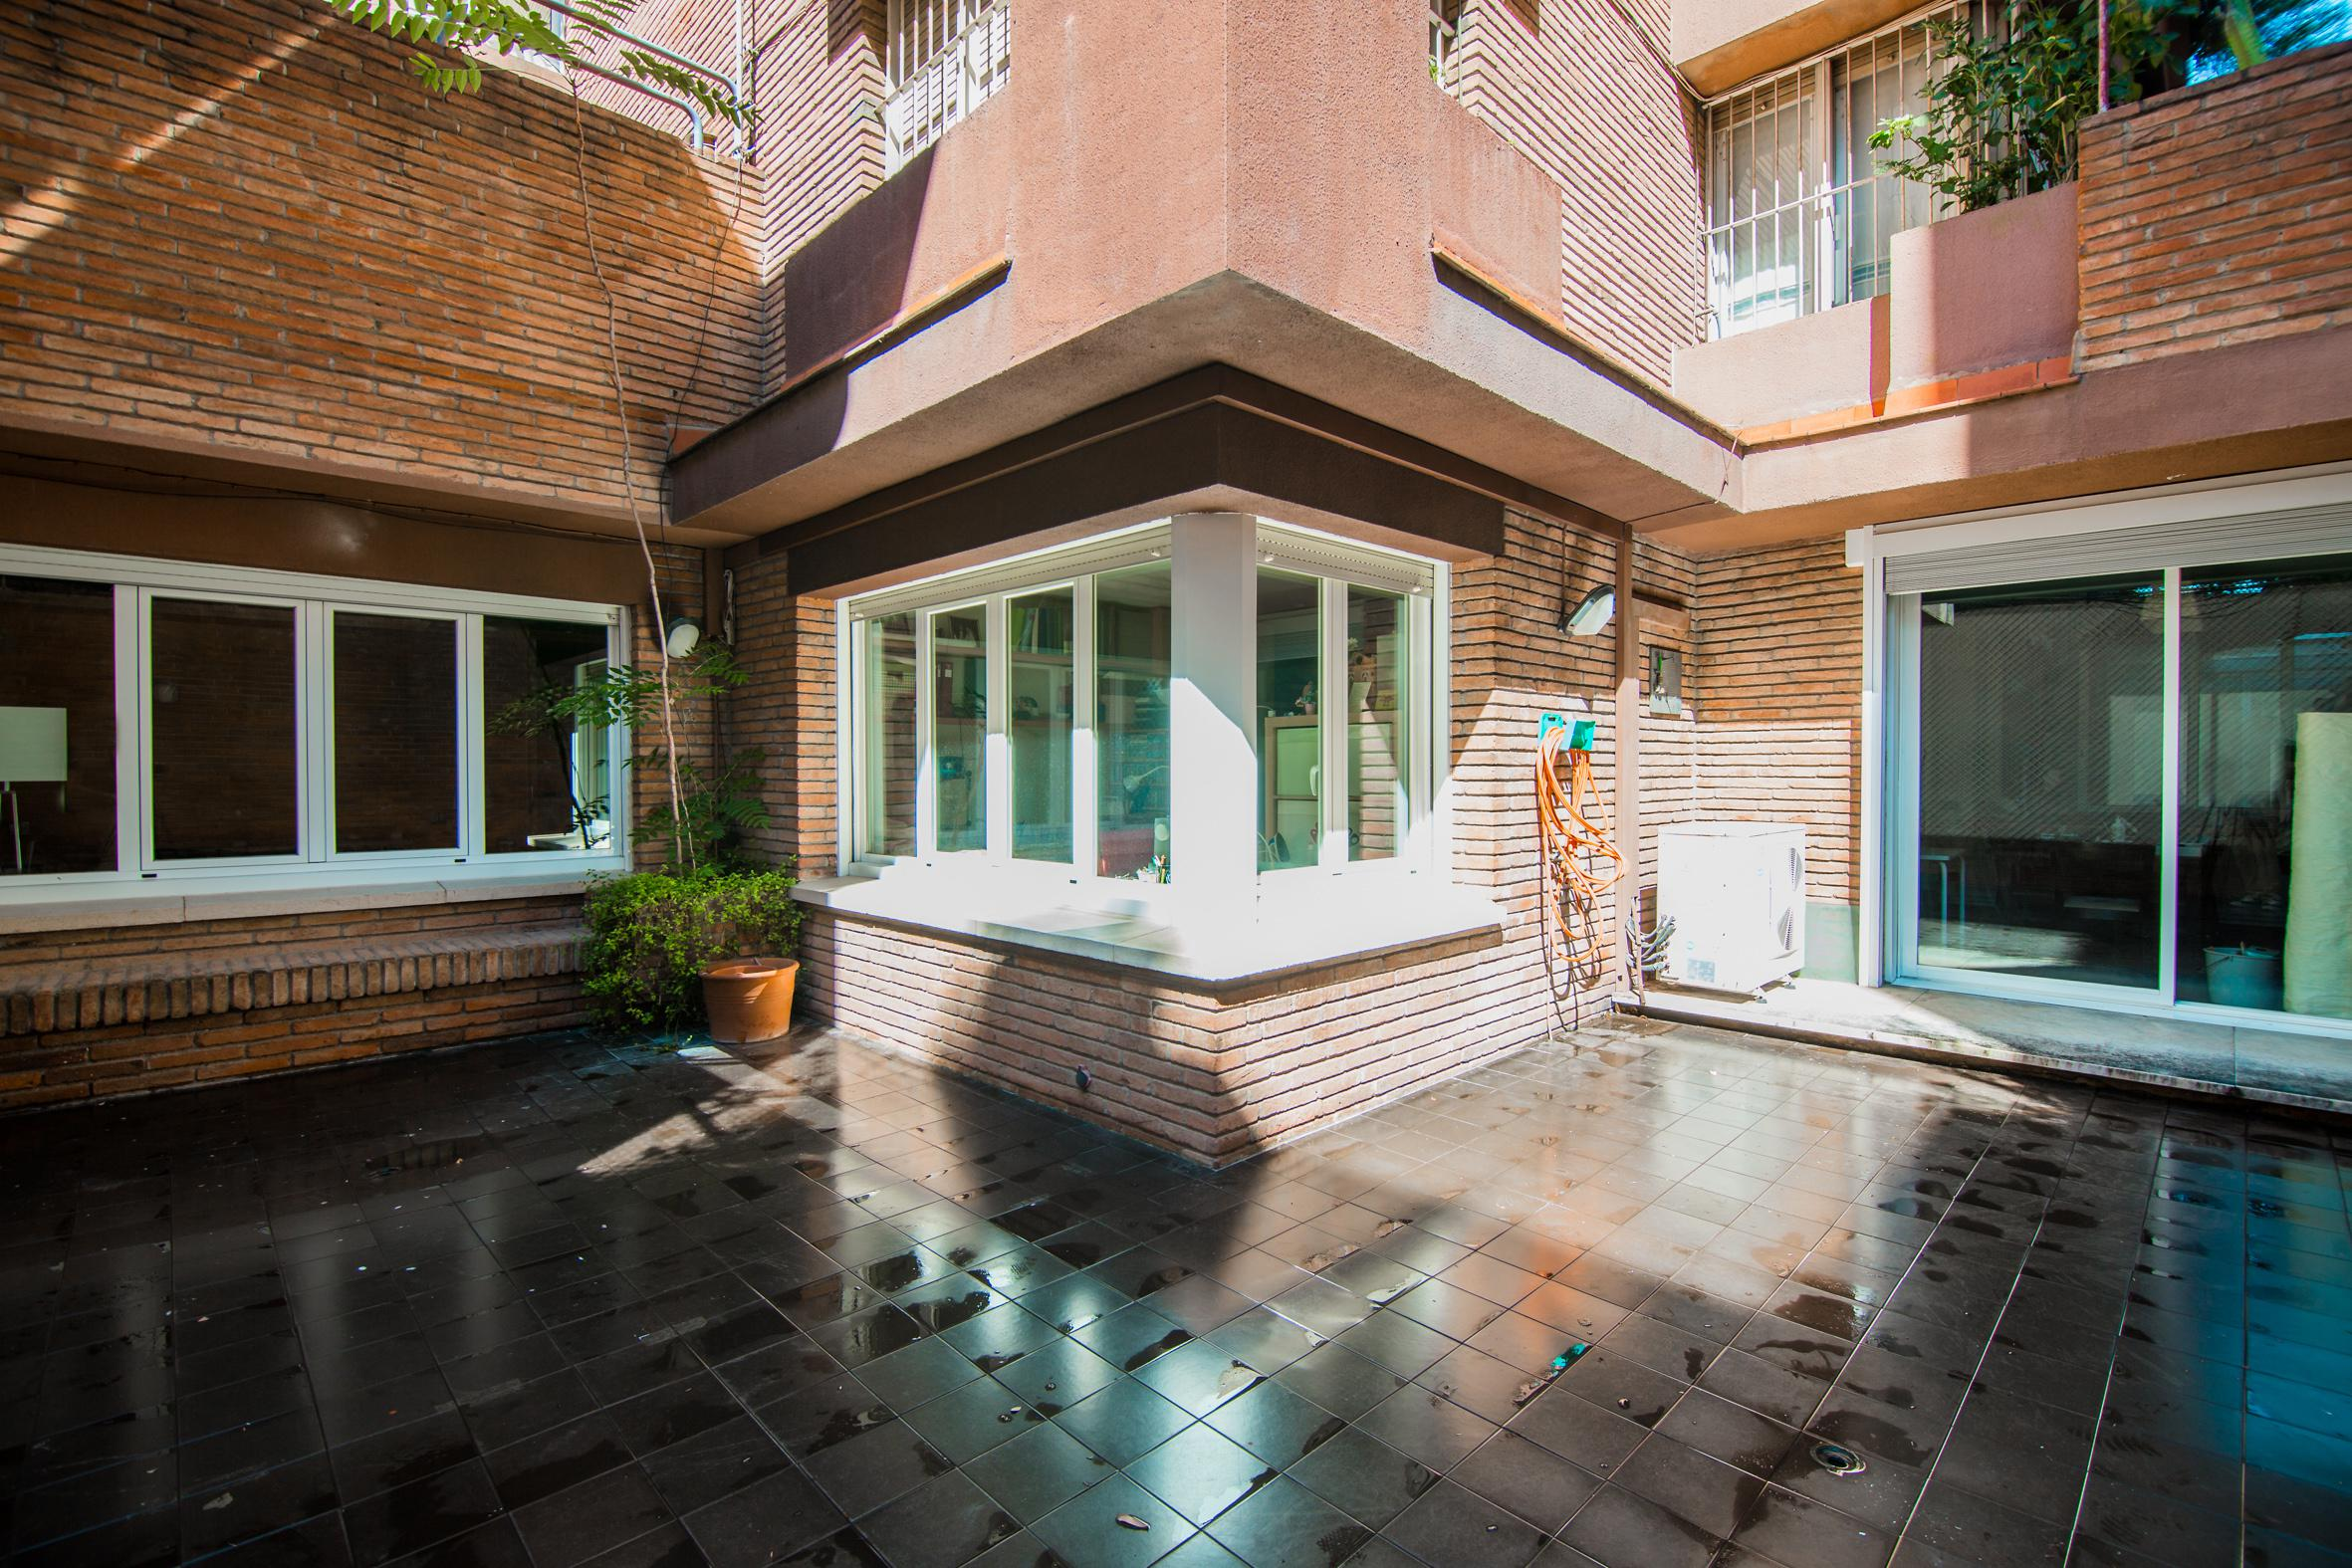 233306 Ground floor for sale in Sarrià-Sant Gervasi, Sant Gervasi-Galvany 32